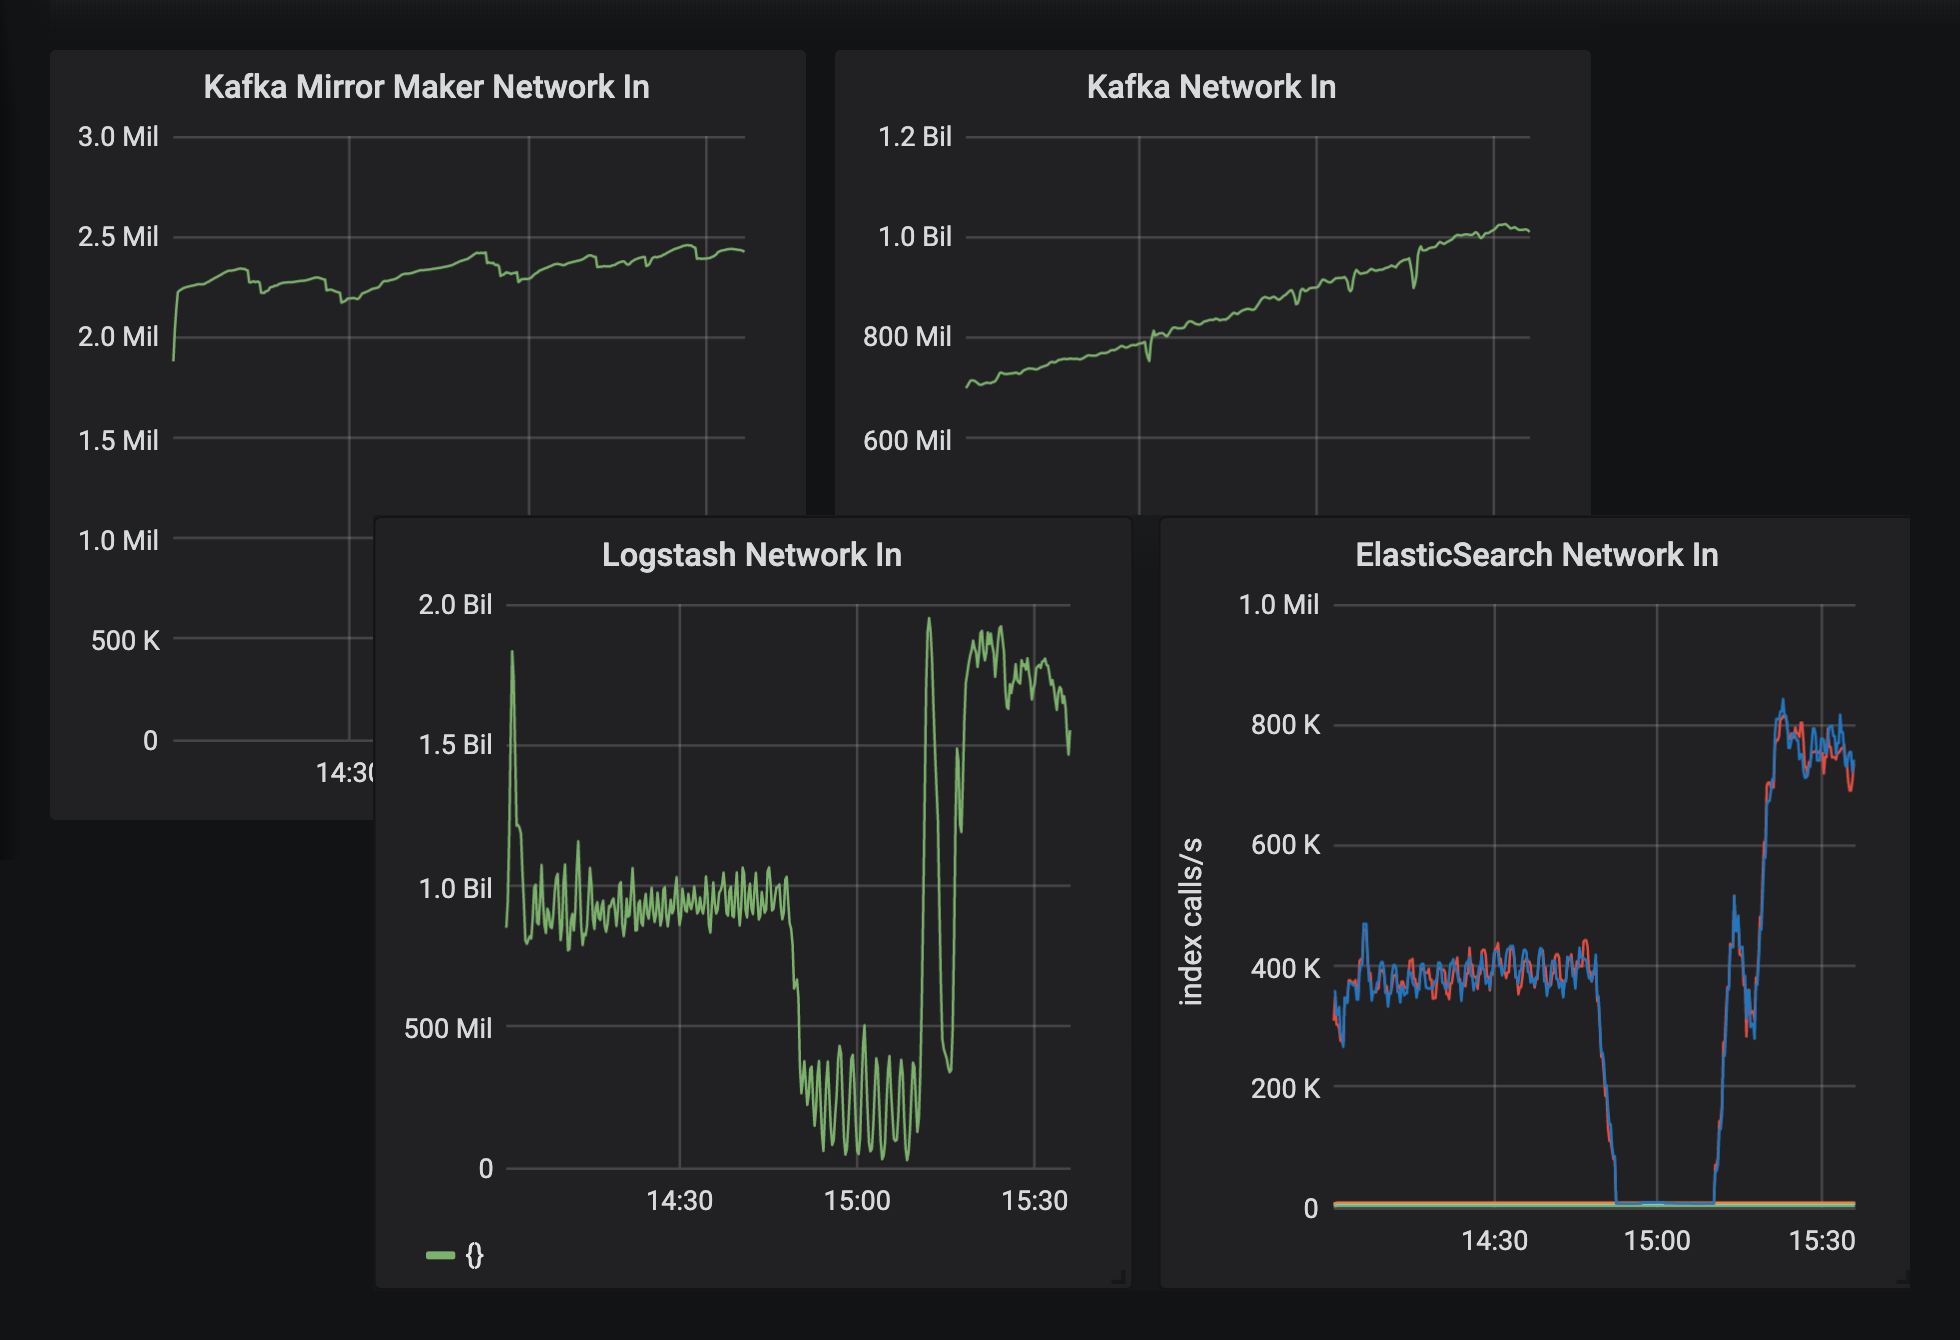 Chart I: due to a [preemptible event](https://cloud.google.com/compute/docs/instances/preemptible), logstash instances were turned off, causing a decrease in Elasticsearch indexing rate. In the dashboard, we can notice immediately which component is broken.